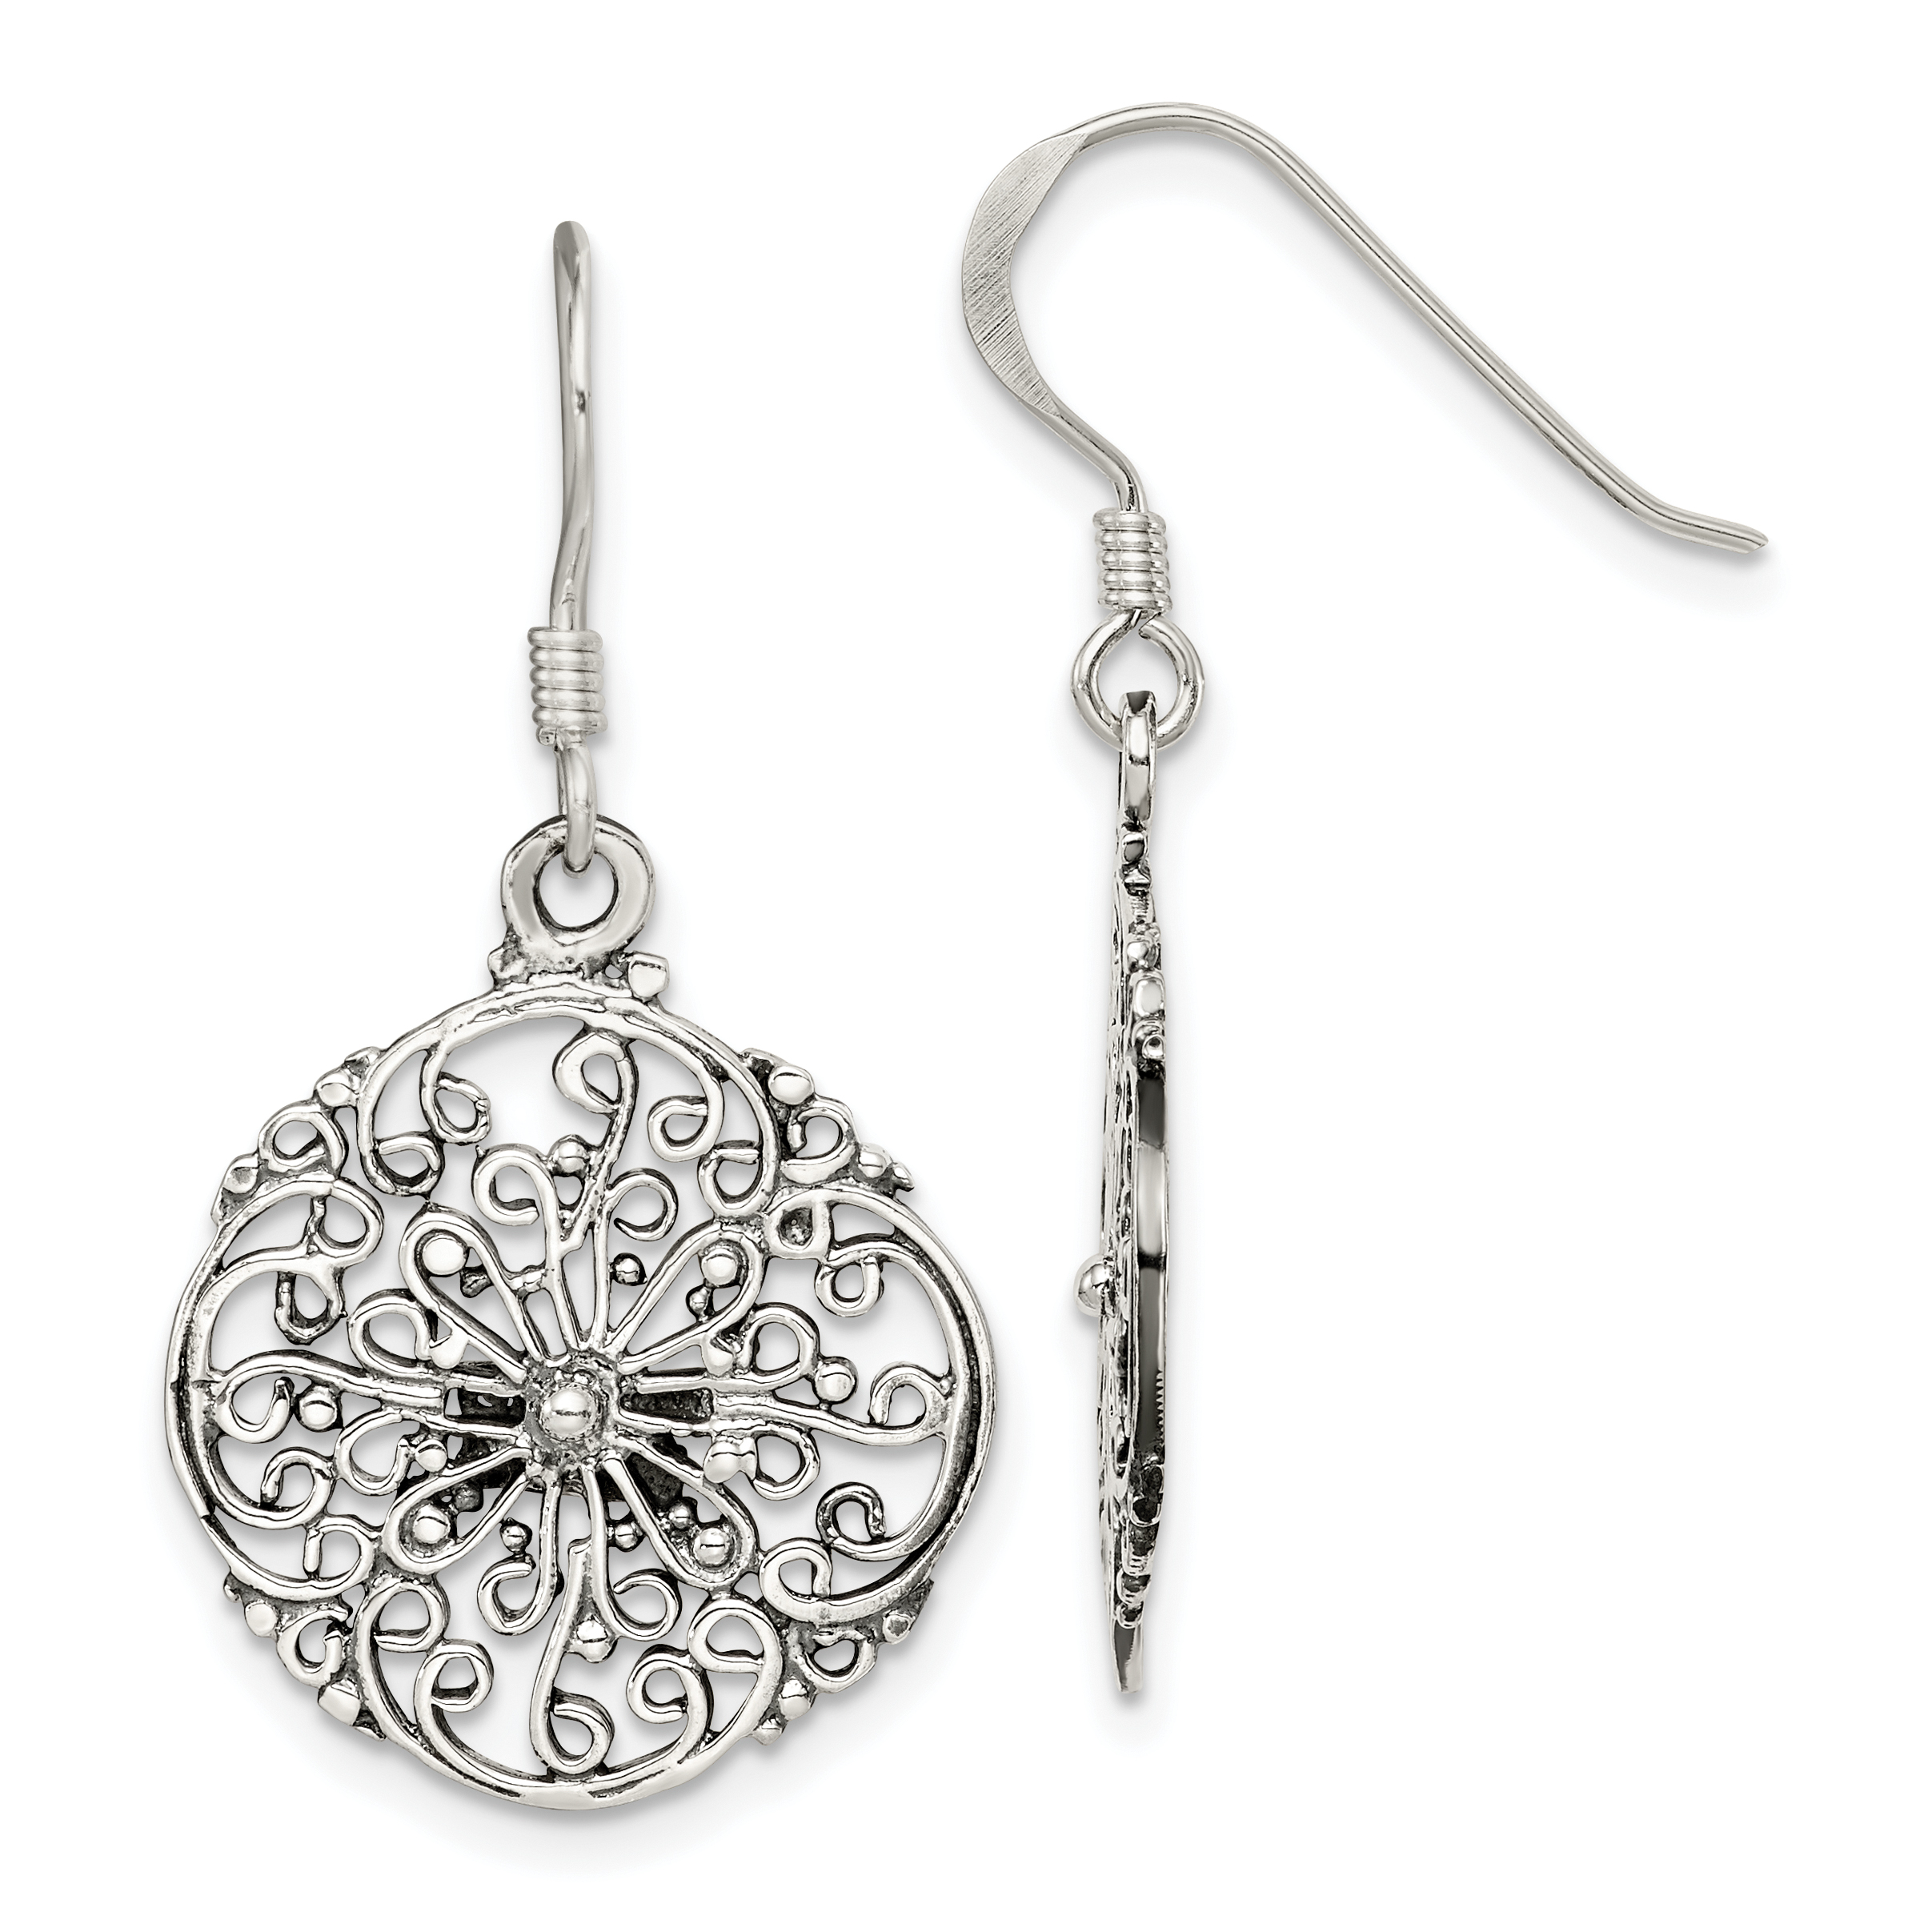 classic silver finds jewelry great sensitive for product antiqued square cutout women fashion stainless filigree designs drop earrings steel loralyn trends feminine shaped diamond skin